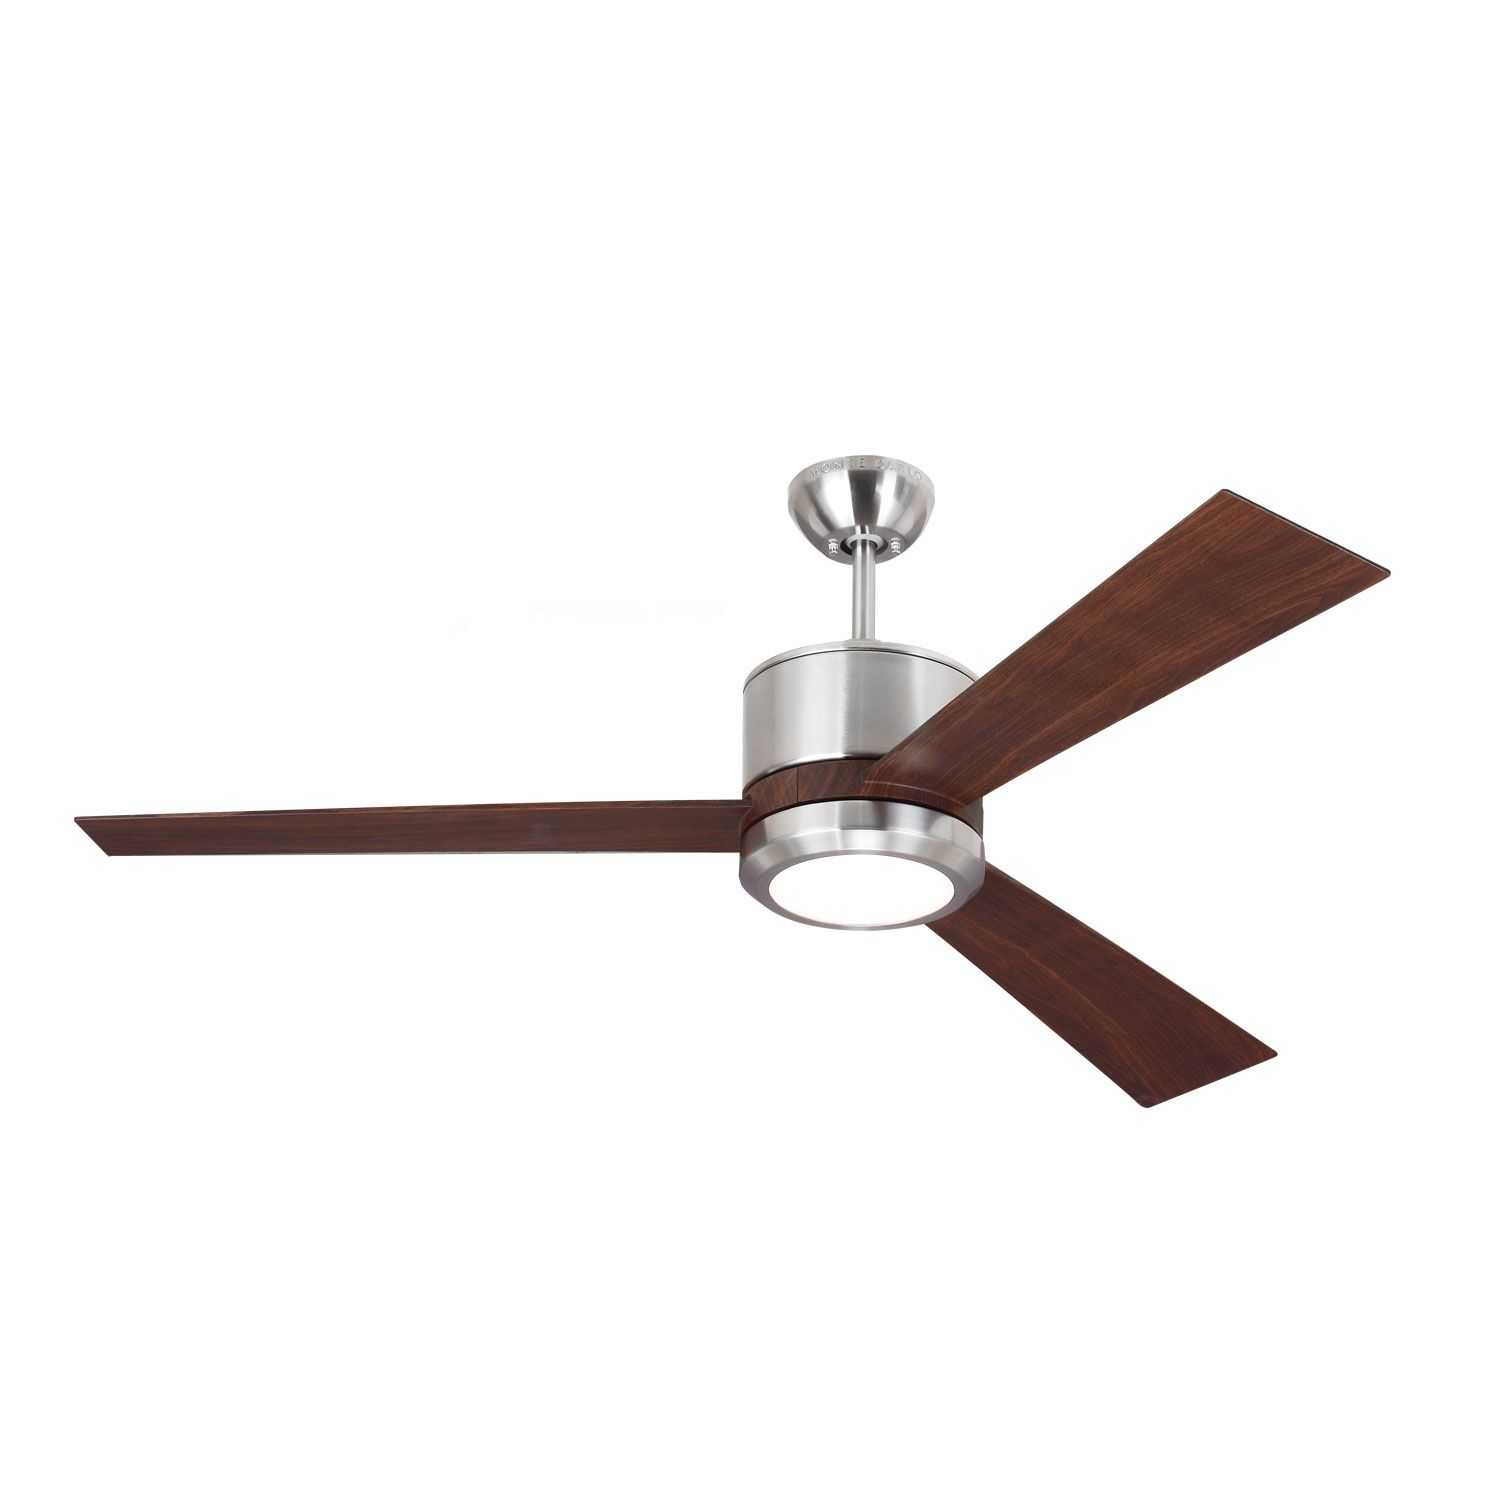 Vision 3 Blade Ceiling Fan With Light By Monte Carlo 3vnr52rzwd V1 Ceiling Fan With Light Ceiling Fan Fan Light